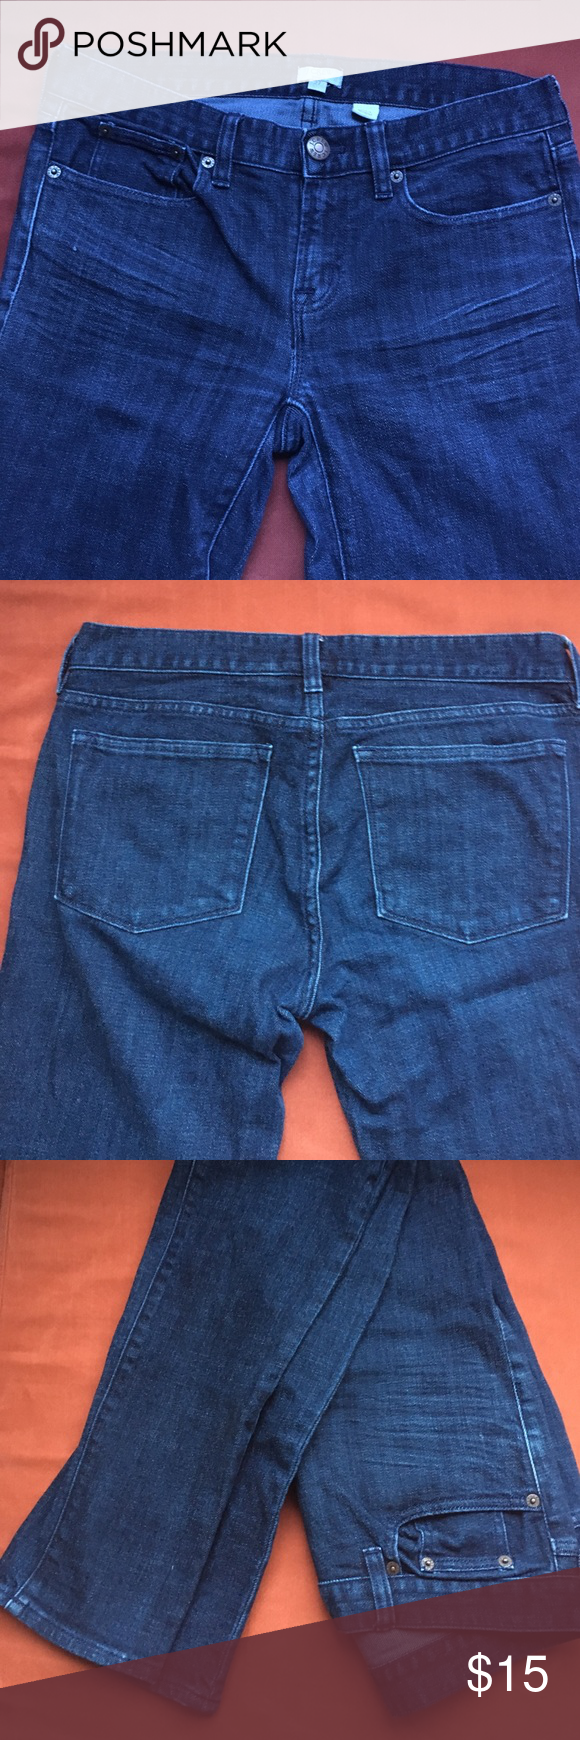 JCrew Jeans Always got compliments on these jeans but they are too small now for me! J. Crew Jeans Straight Leg